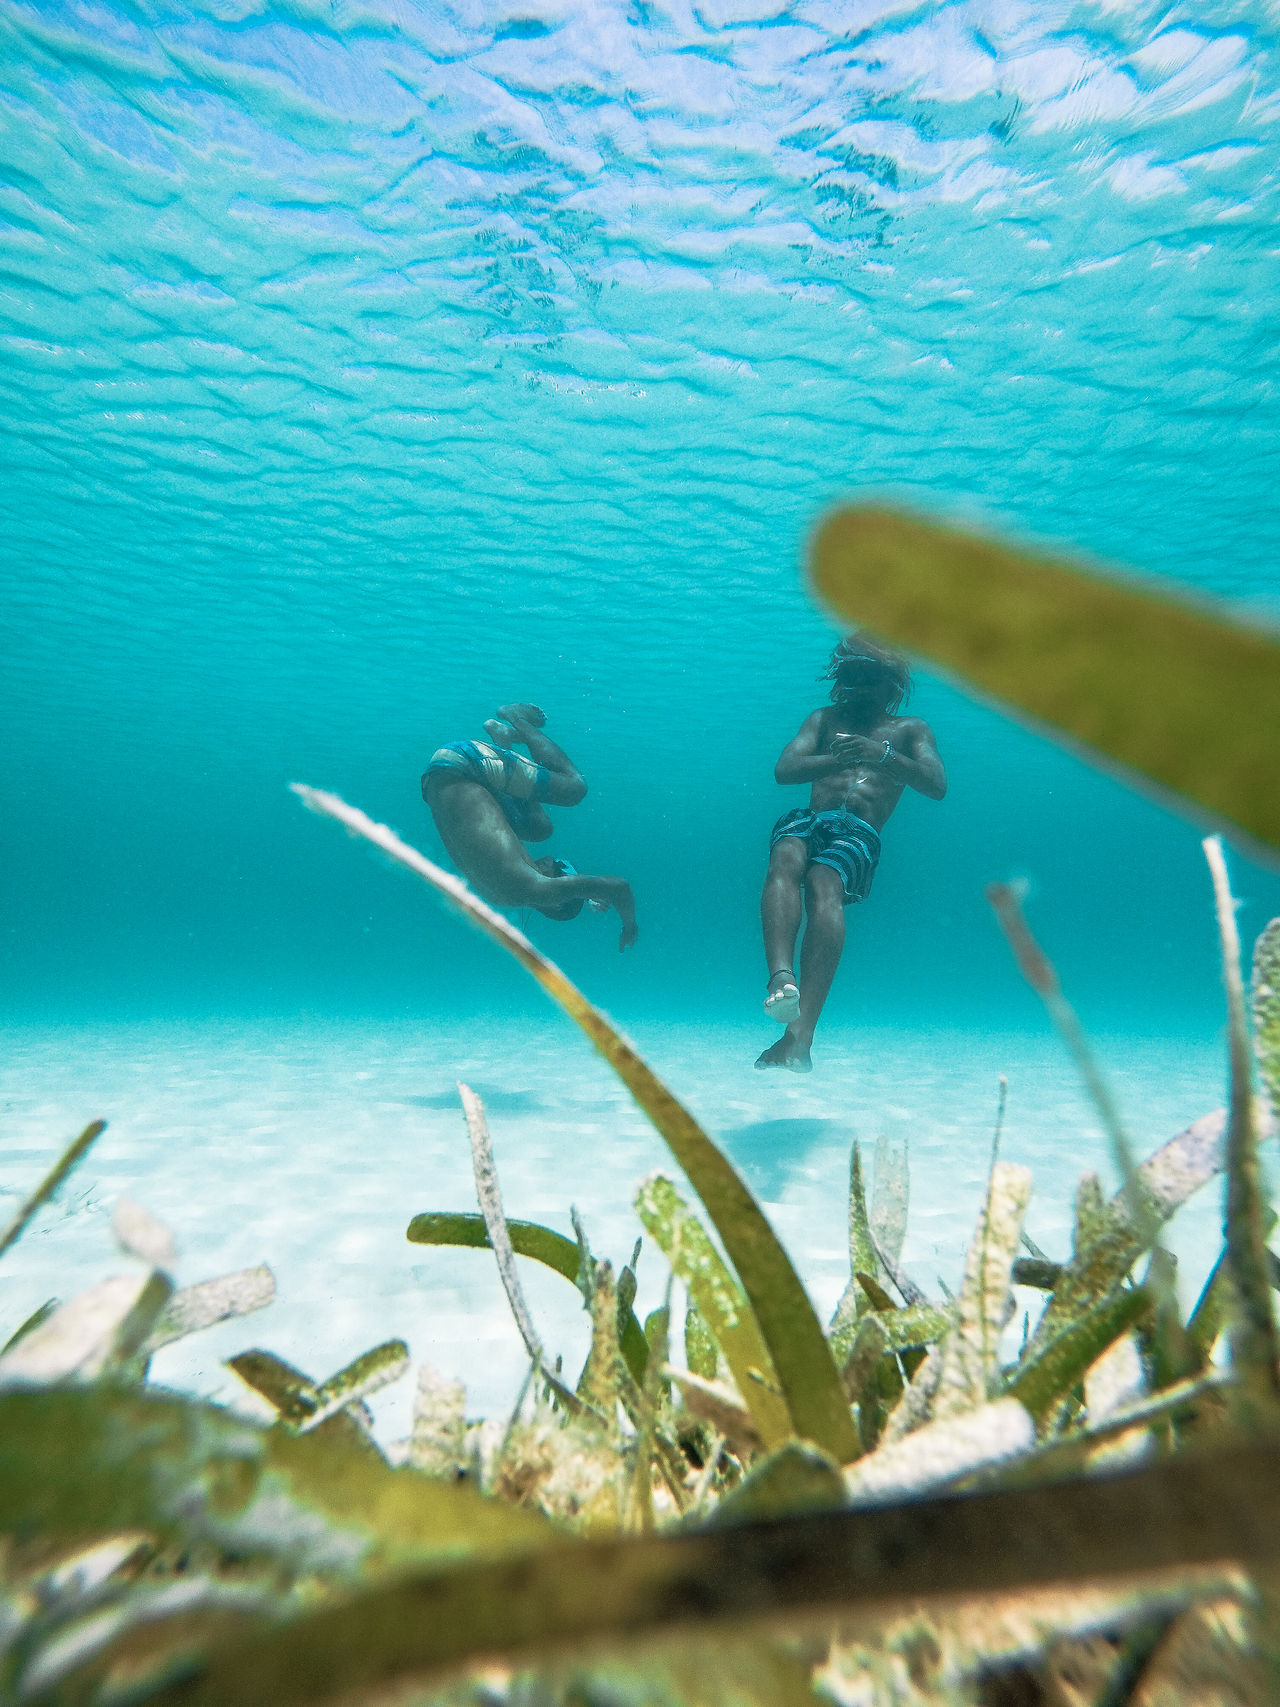 🏊We love being underwater🌊~ UnderSea underwater sea Nature water beauty in Nature sea life Swimming outdoors The Great Outdoors - 2017 EyeEm Awards travel destinations summer Live for the Story turksandcaicos beach paradise grandturk